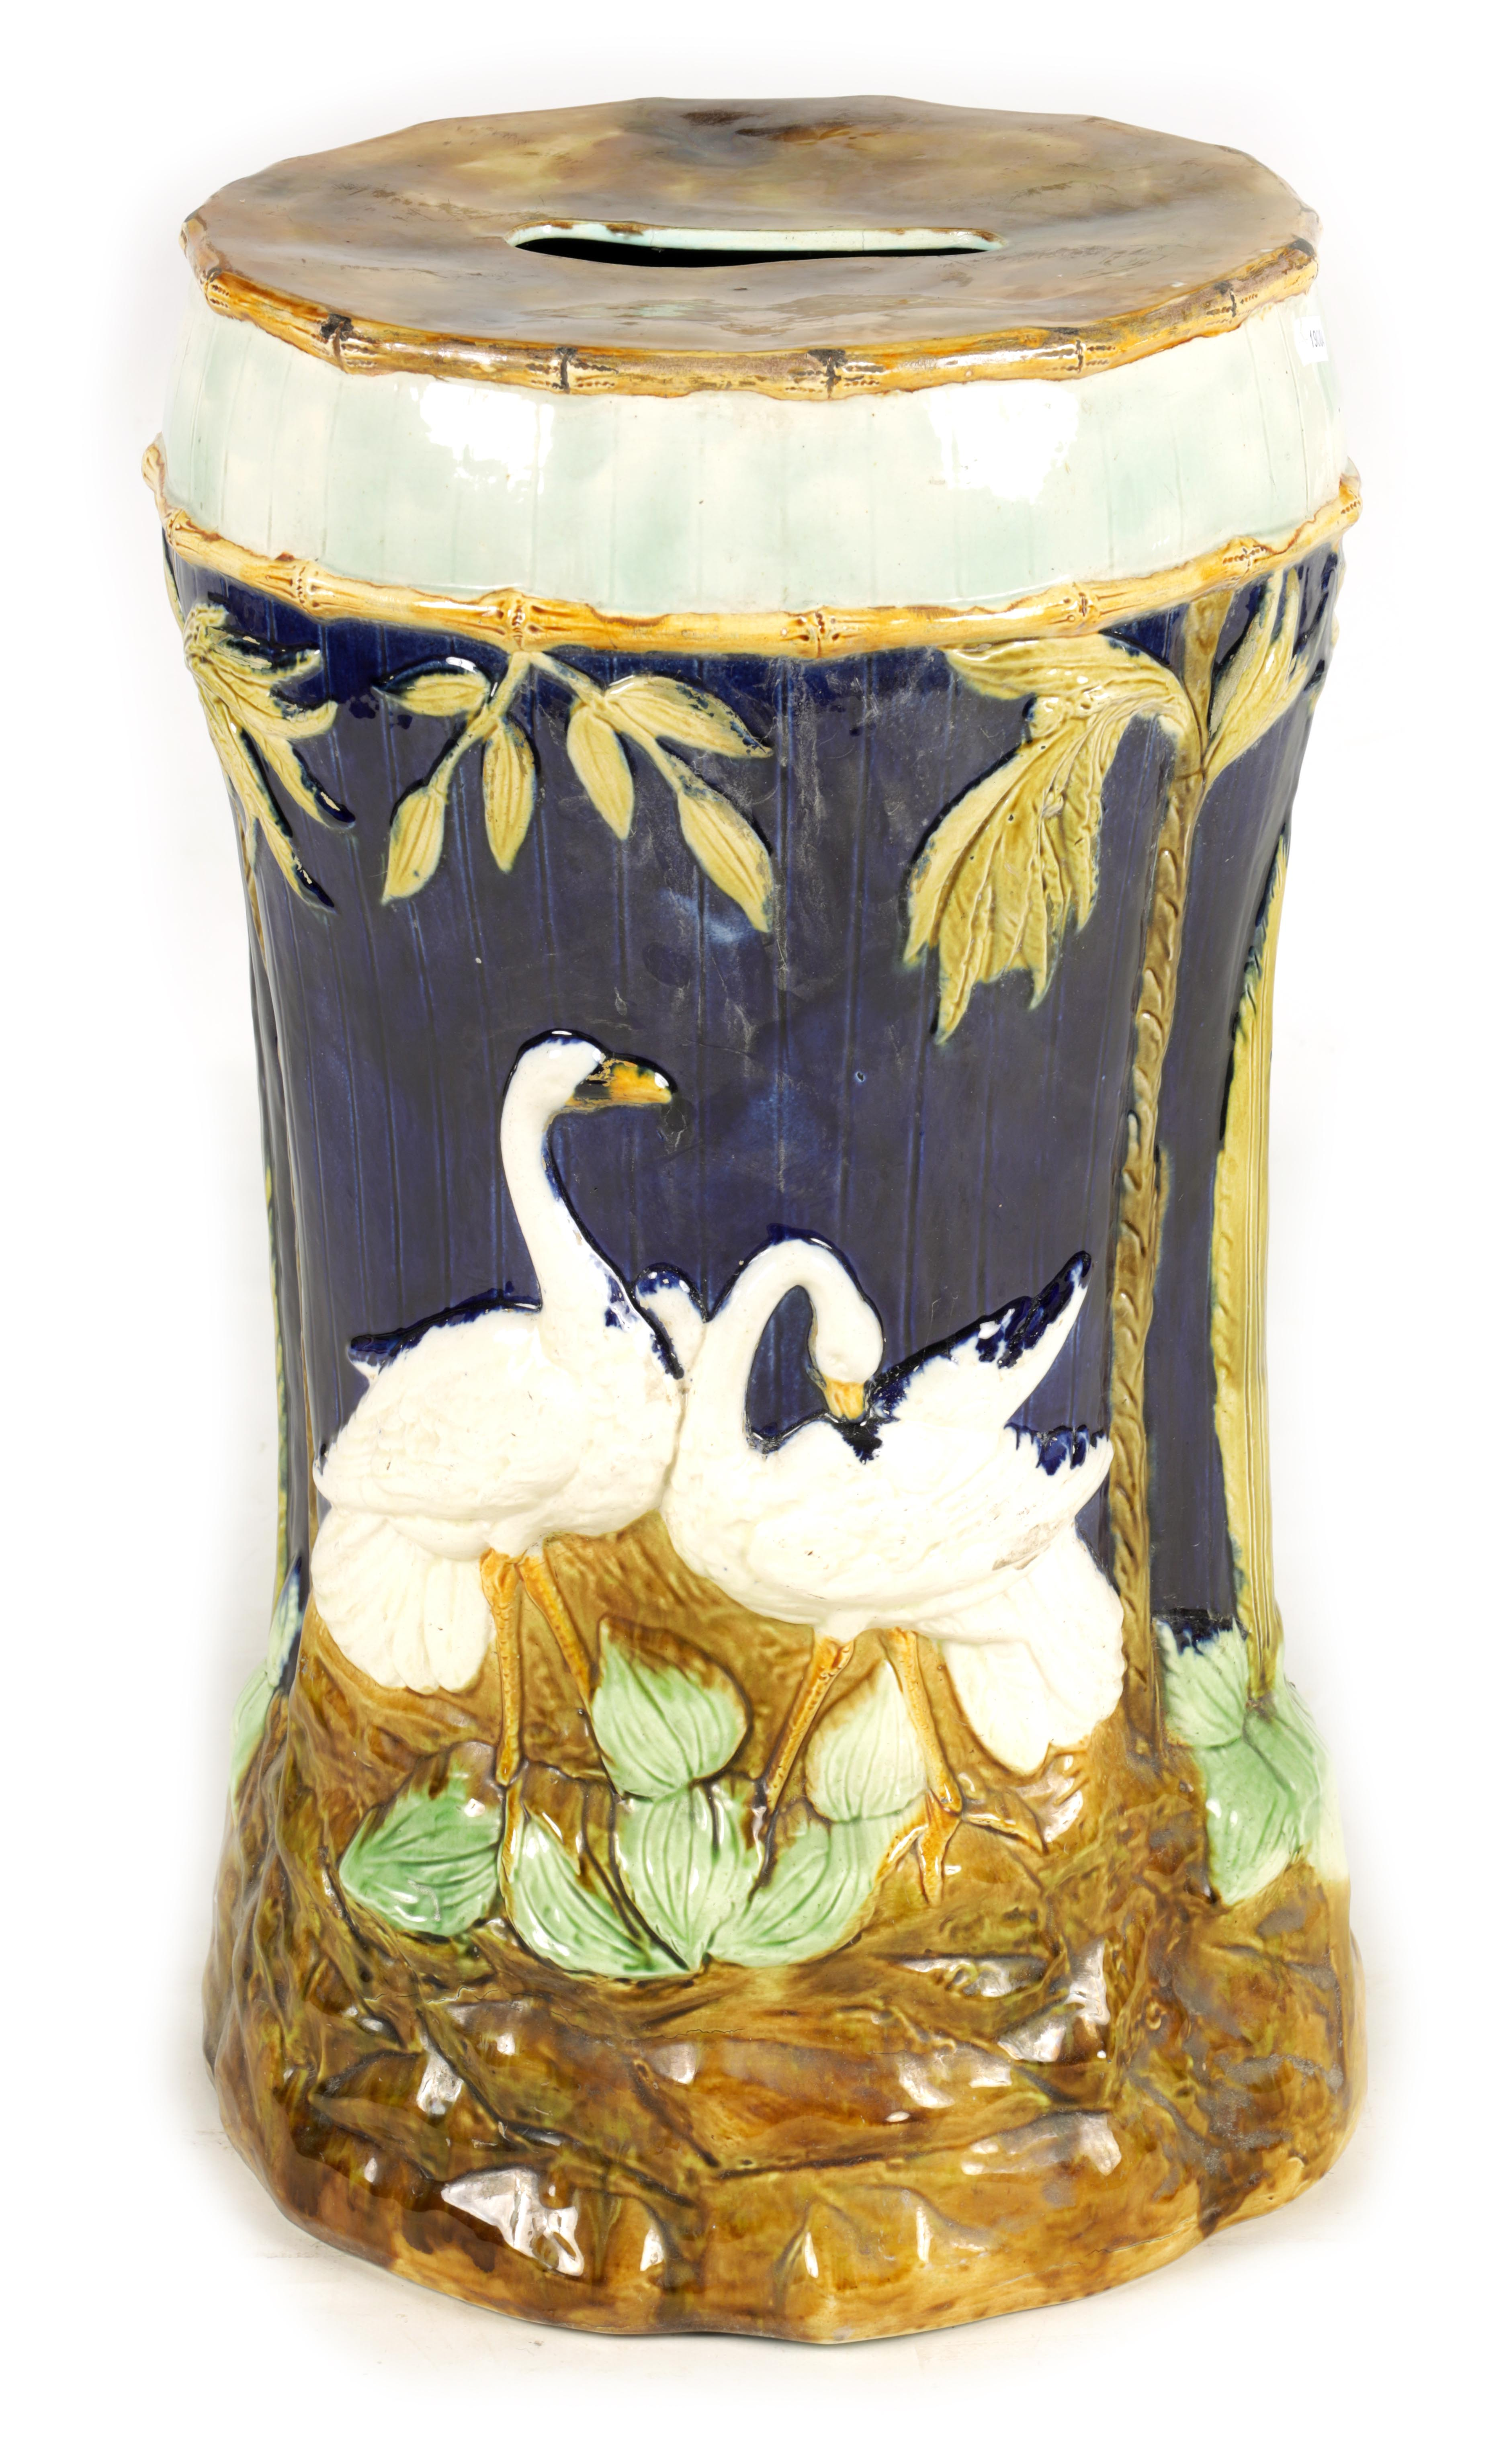 A LATE 19TH CENTURY MAJOLICA GARDEN SEAT decorated with storks between palm trees 54cm high